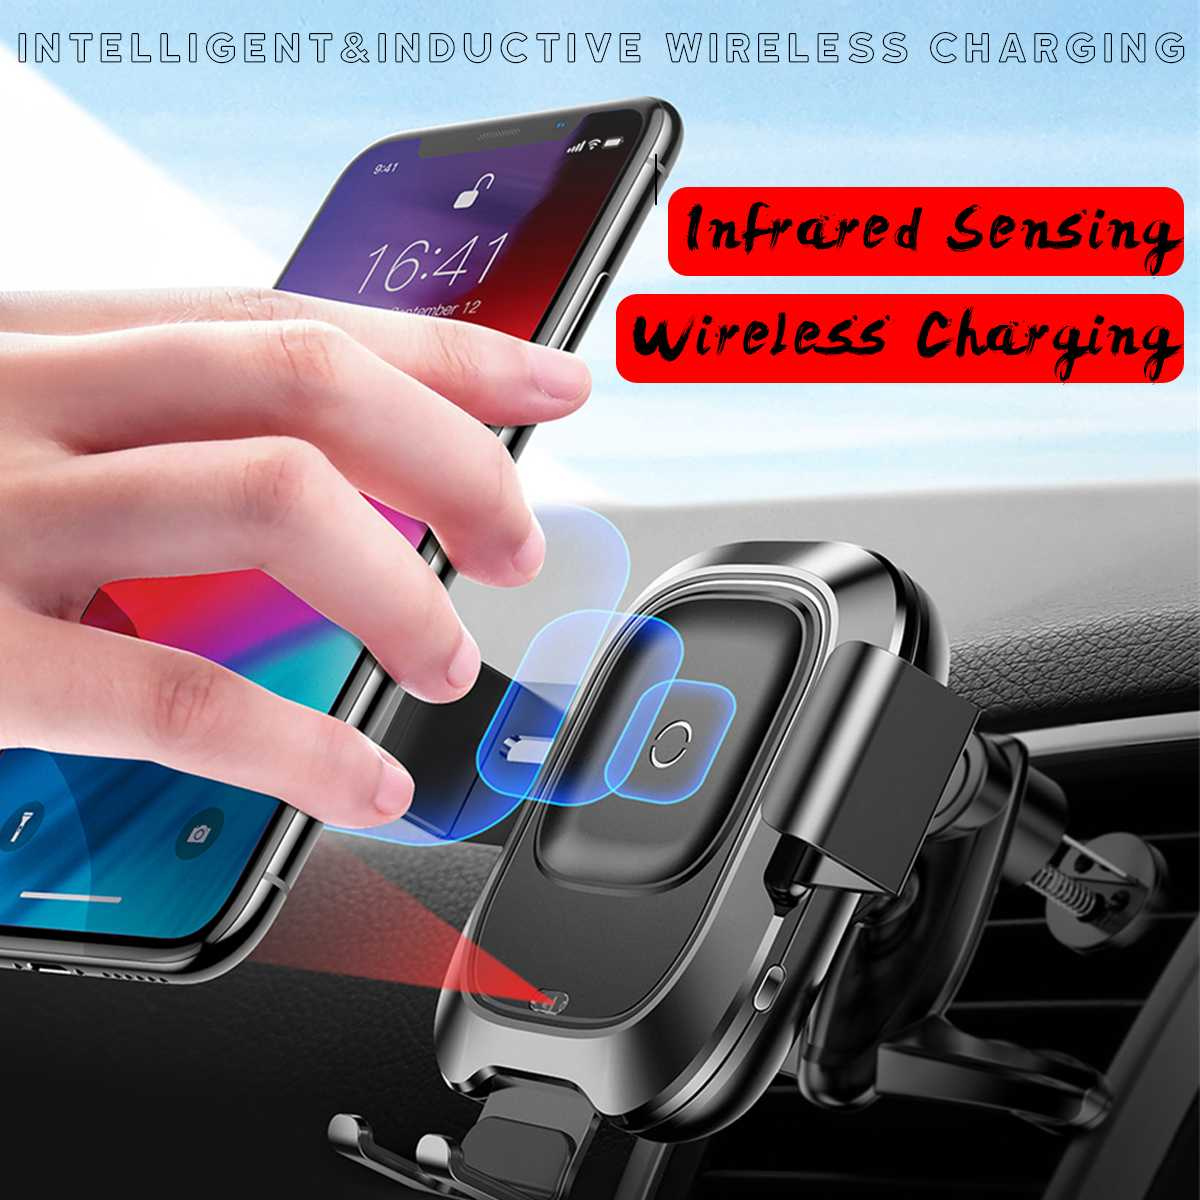 10W Qi Car Wireless Charger  Infrared Fast Wirless Charging Car Phone Holder For iPhone 8 Plus Xs Max Xr X for Samsung S10 S9 S810W Qi Car Wireless Charger  Infrared Fast Wirless Charging Car Phone Holder For iPhone 8 Plus Xs Max Xr X for Samsung S10 S9 S8